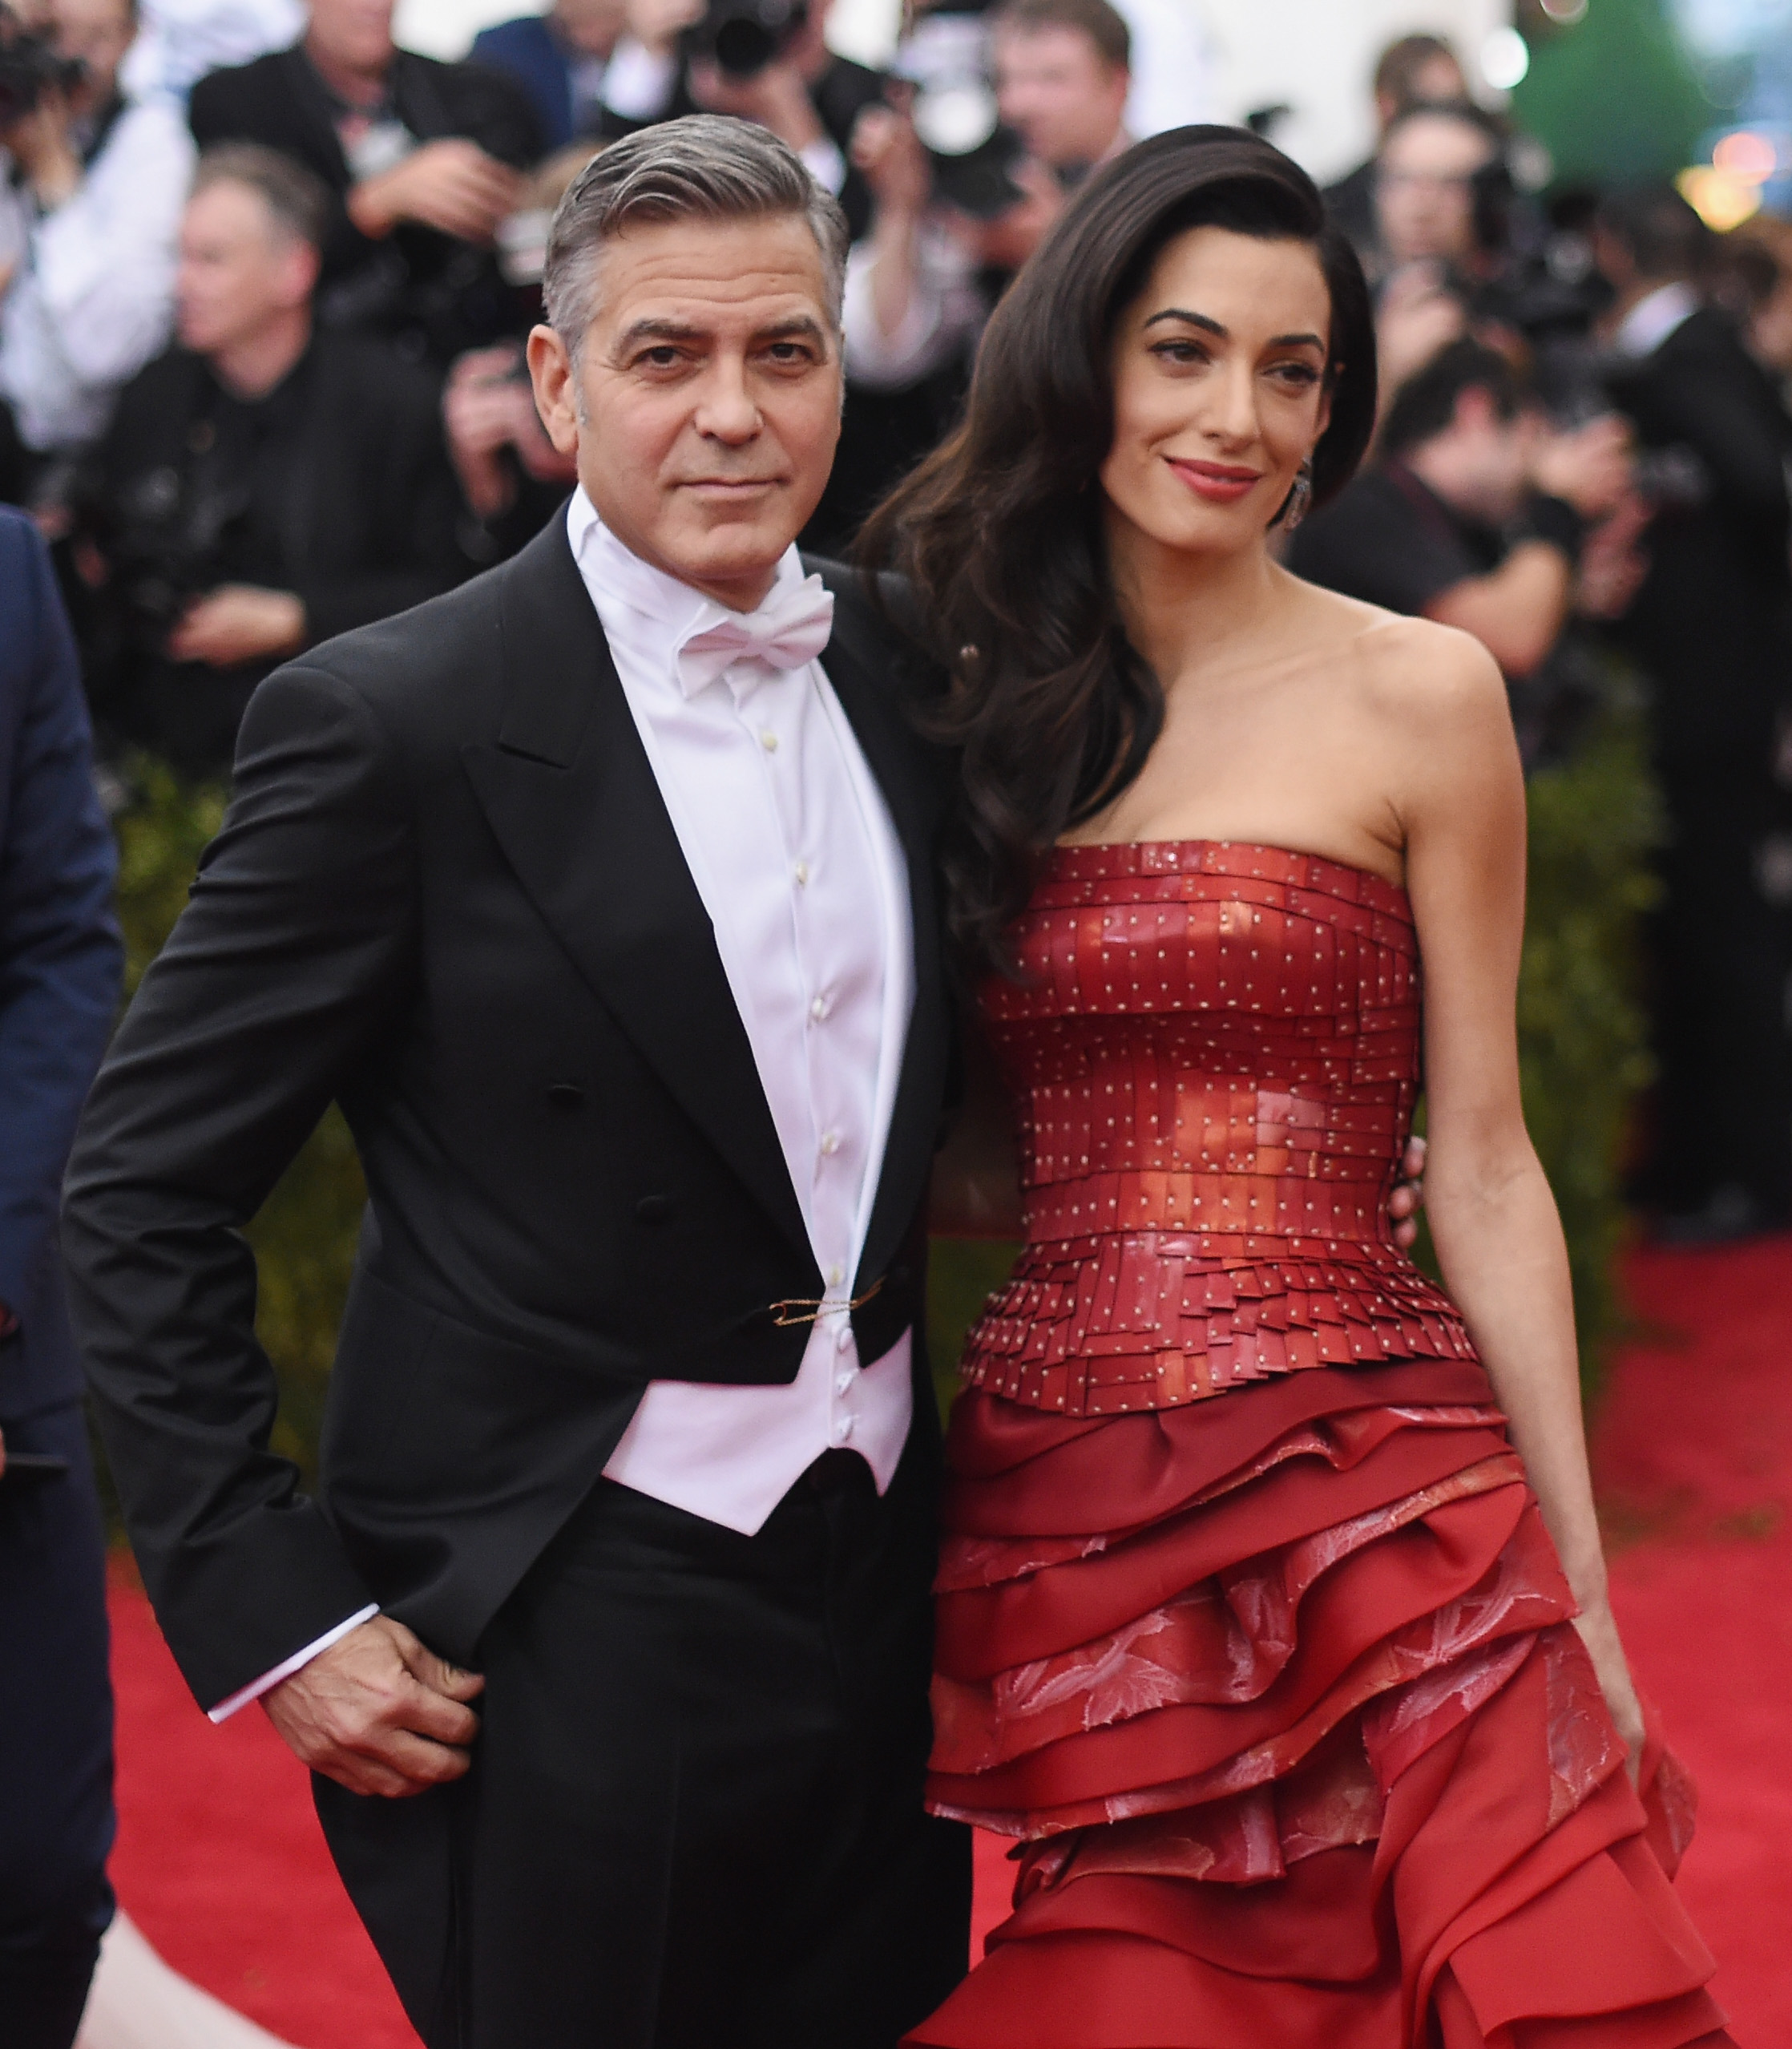 <p>A-list couples have a long history of attending the Met Gala, that first Monday in May where the cream of fashion gather to support New York's Costume Institute and get their pictures in the social pages.</p> <p>Whether it's the undeniable glamour of George and Amal Clooney, the sleekness ofGisele Bündchen and Tom Brady or  the brashness of Donald and Melania Trump, there's no mistaking a power couple on the red-carpet.</p> <p>With this year's Met Gala 'Heavenly Bodies: Fashion and the Catholic Imagination', only hours away from kick-off we thought we would look at the most memorable couple moments throughout the history of the Met Gala.</p> <p>Take it away George and Amal Clooney in John GallianoforMaison Margiela, at China: Through the Looking Glass  Costume Institute Benefit Gala in 2015</p>